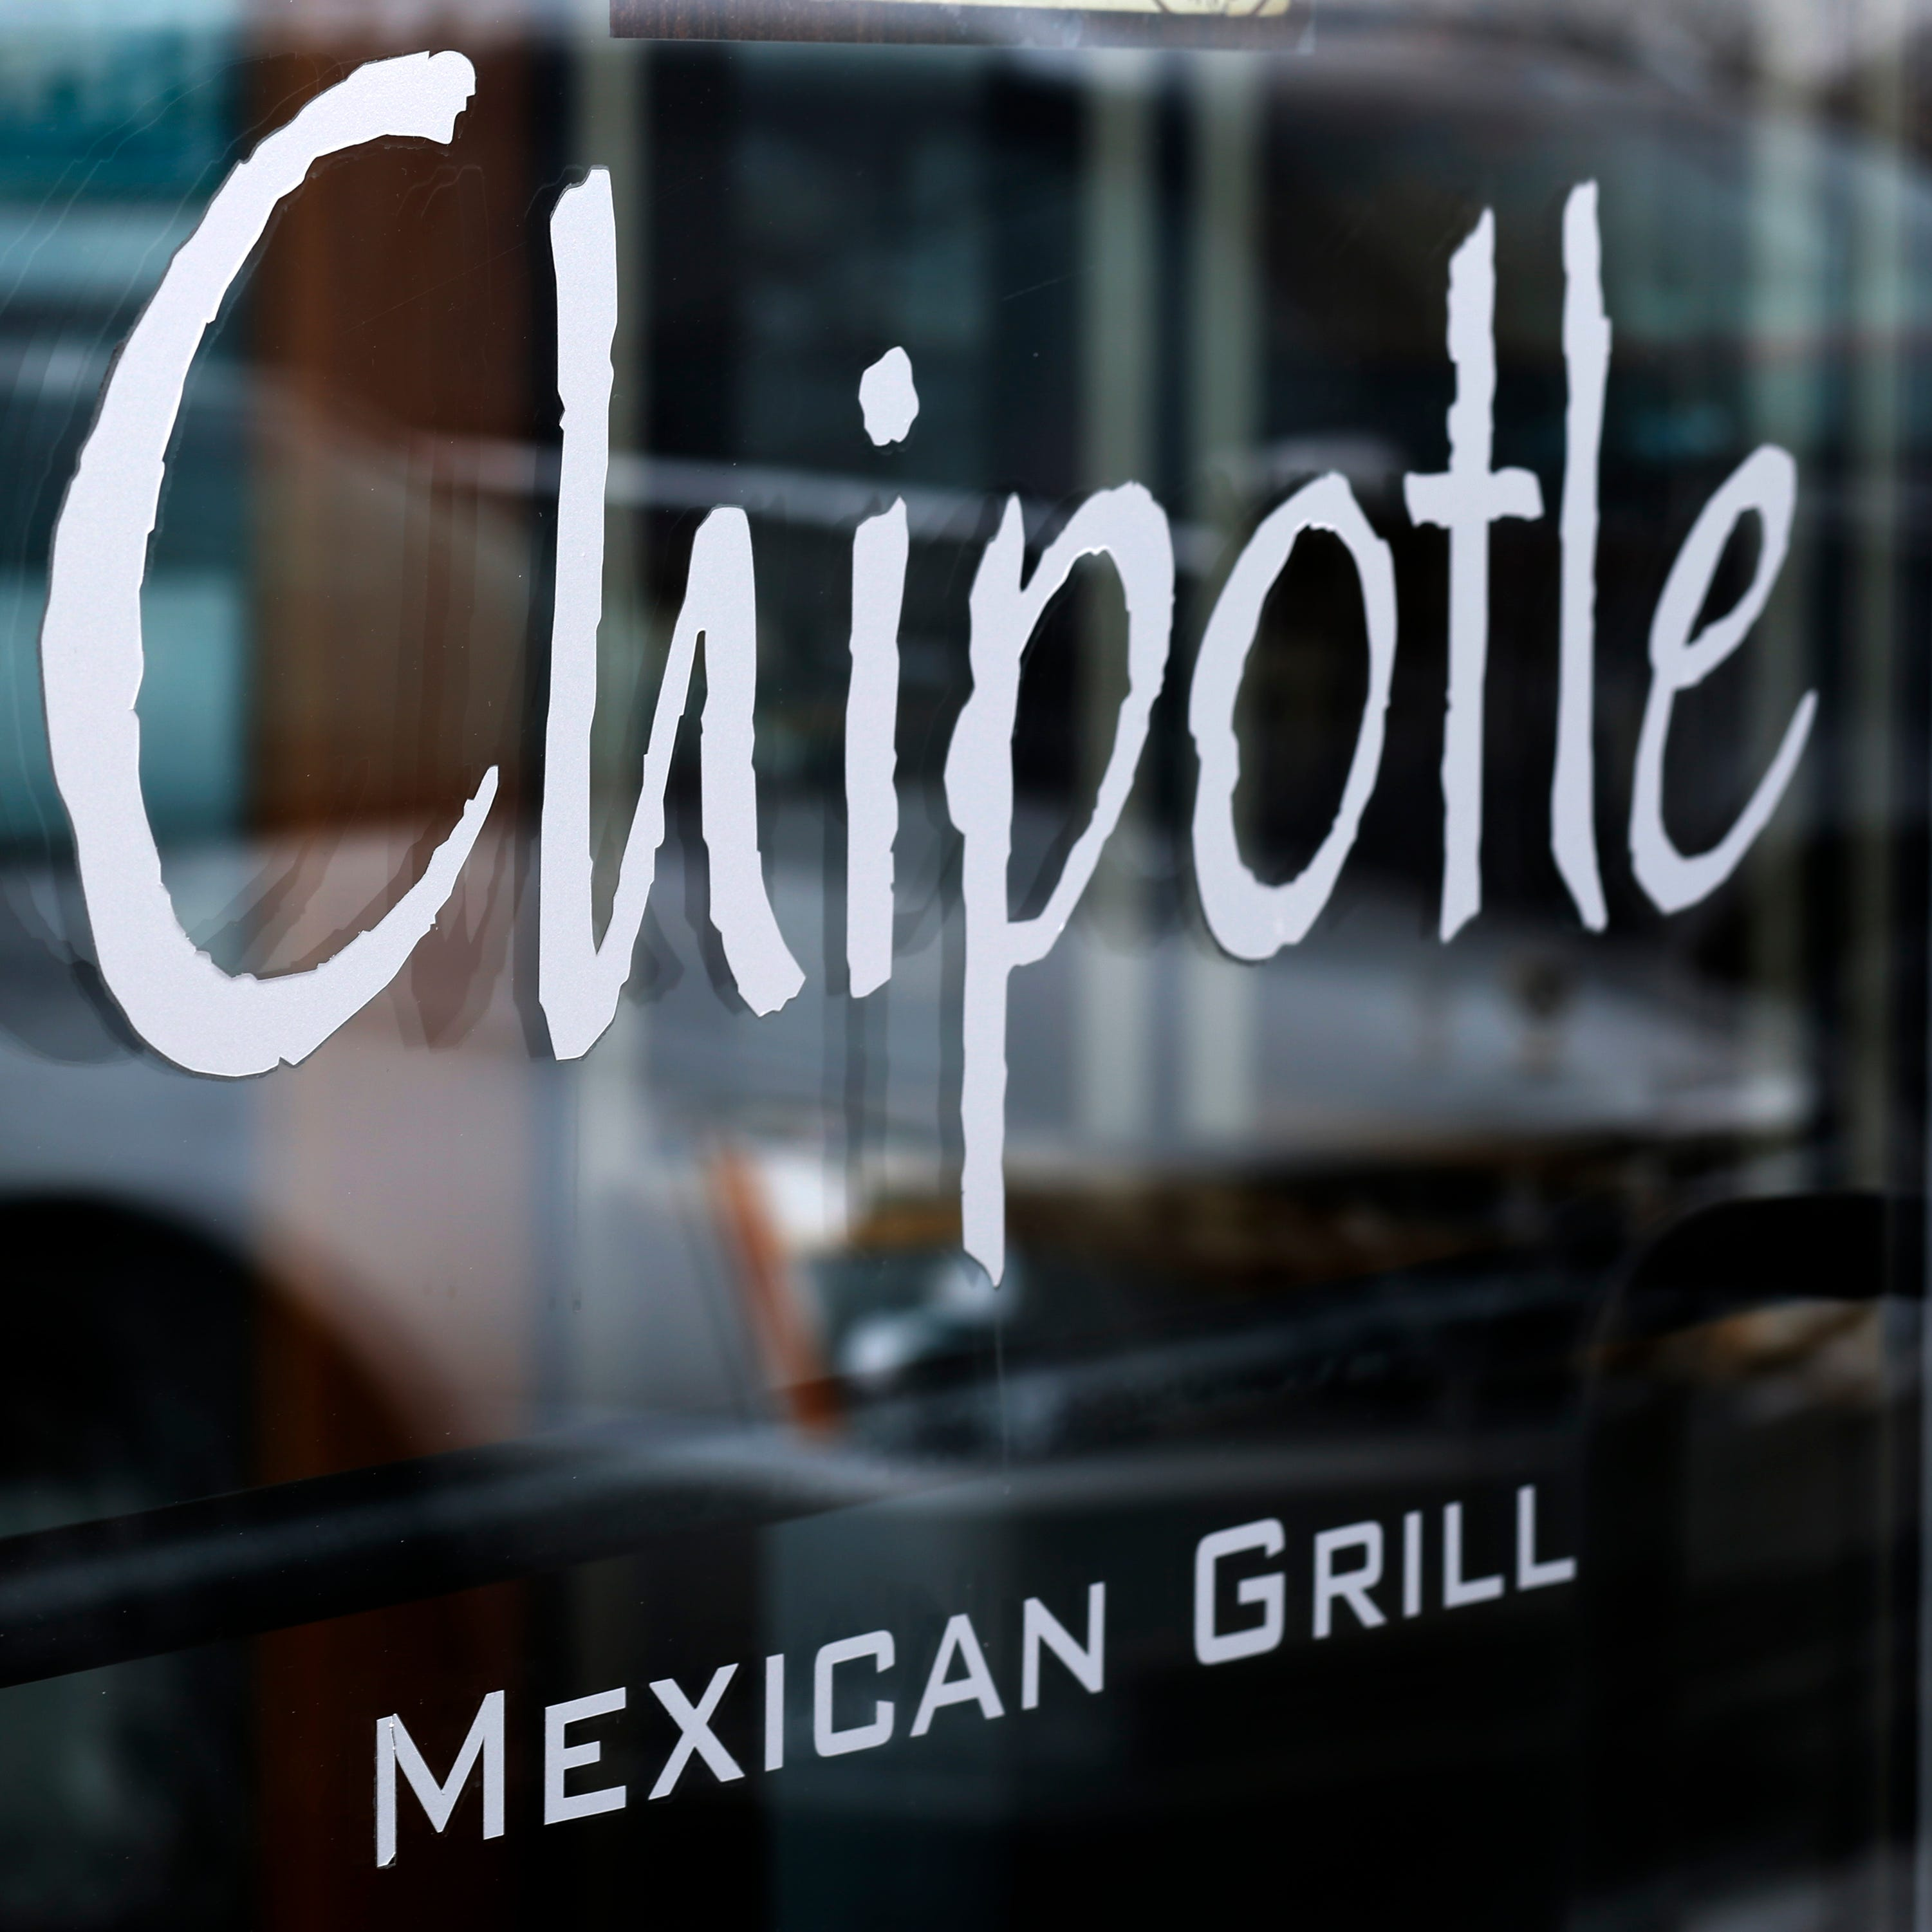 New Chipotle Mexican Grill to open in Sterling Heights with drive-thru pickup